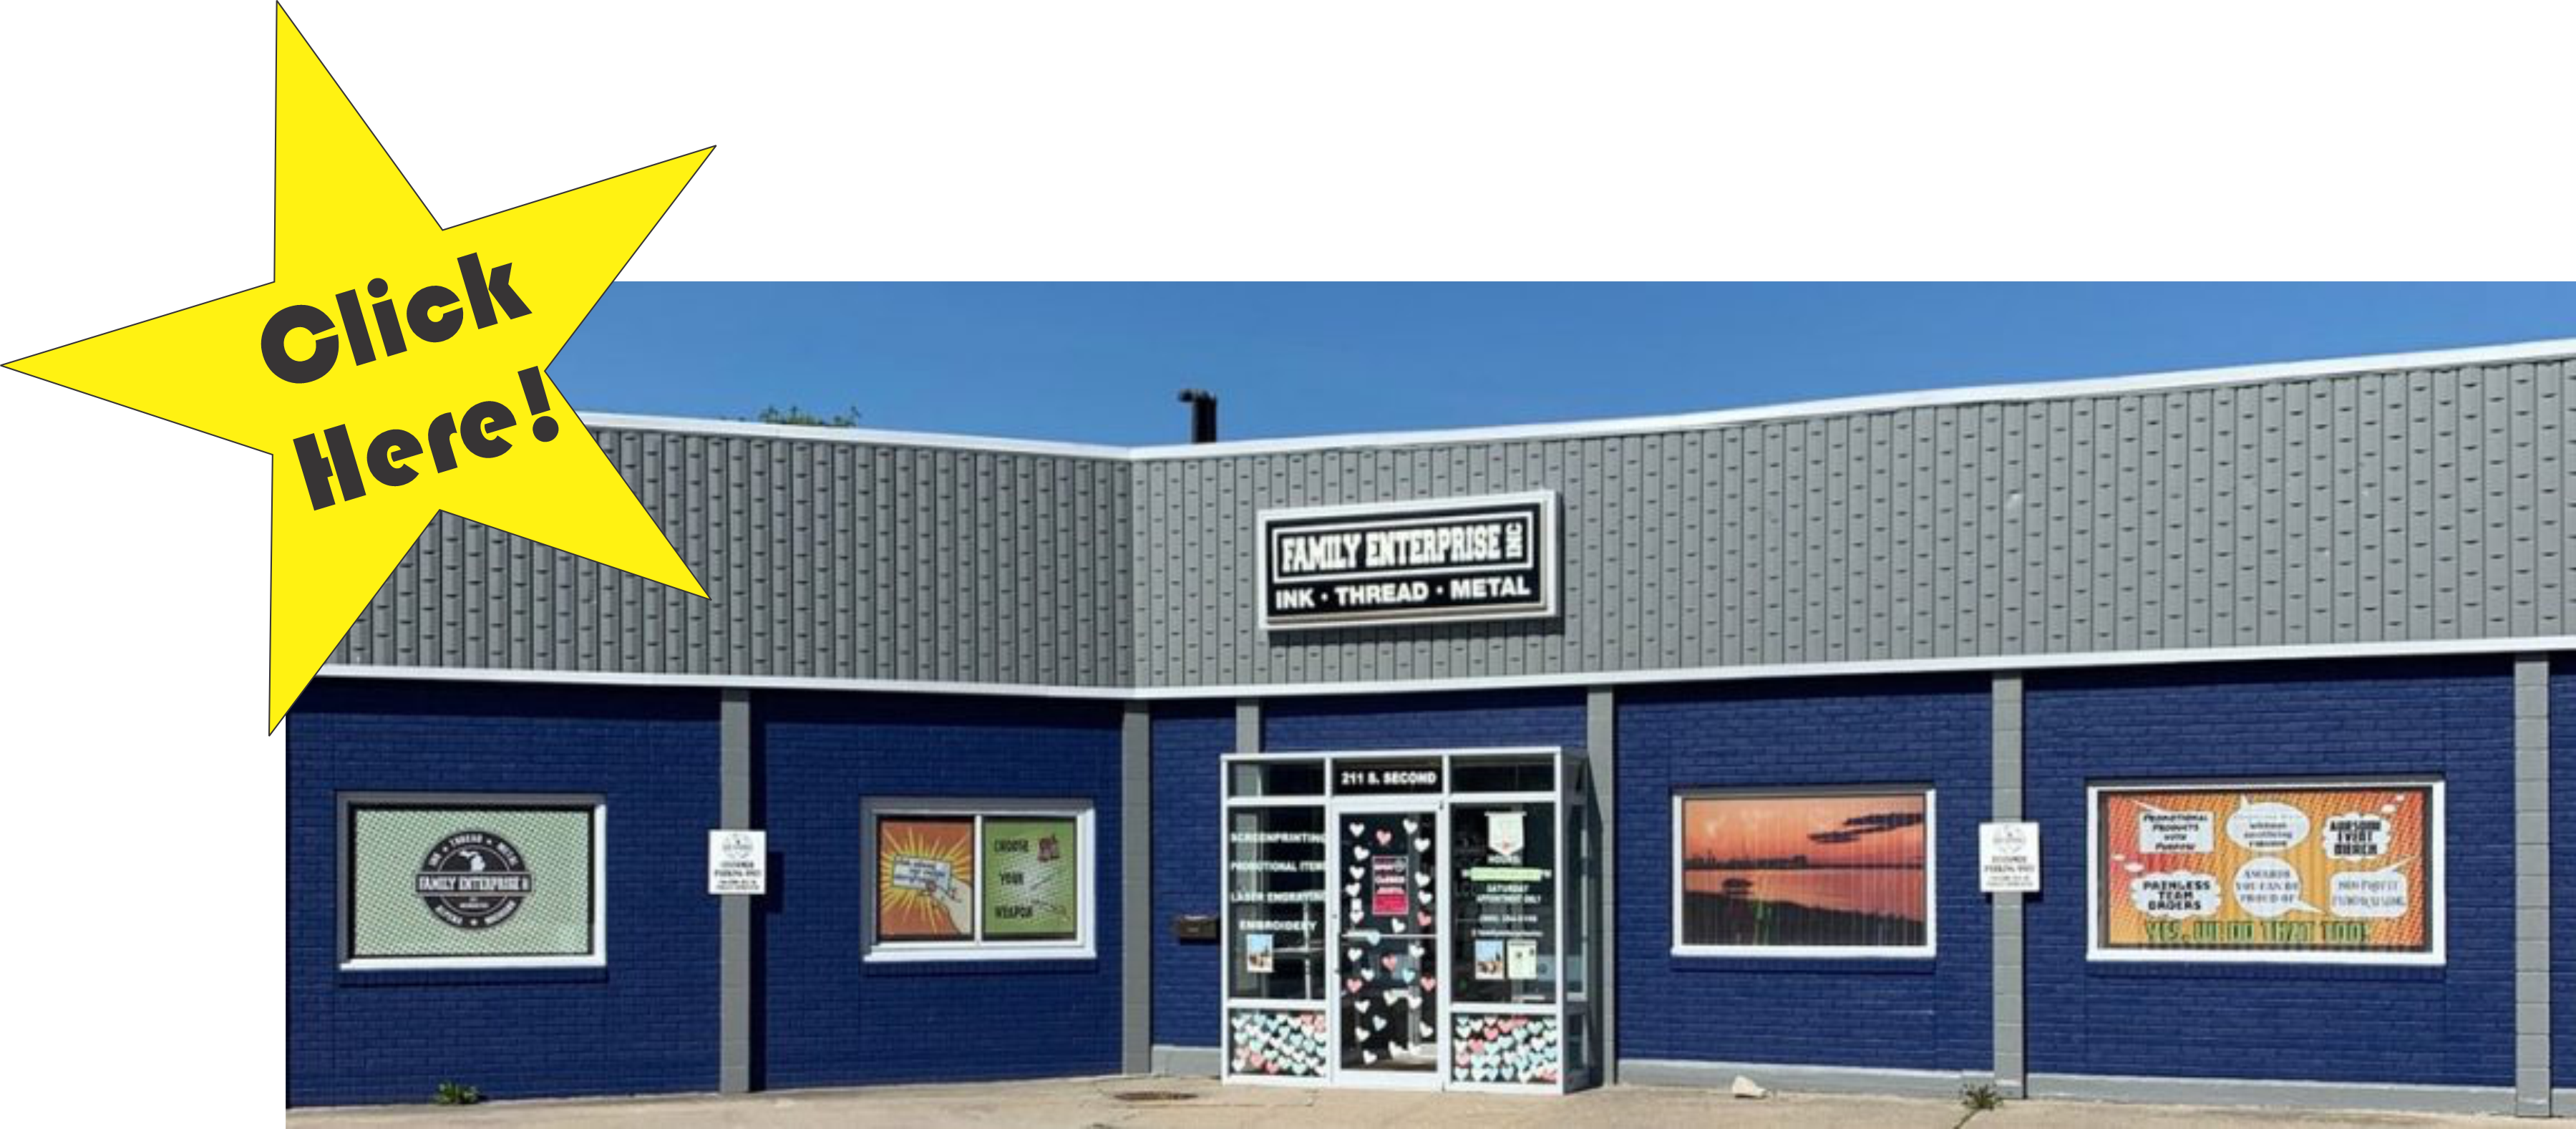 The front of the Family Enterprise inc storefront